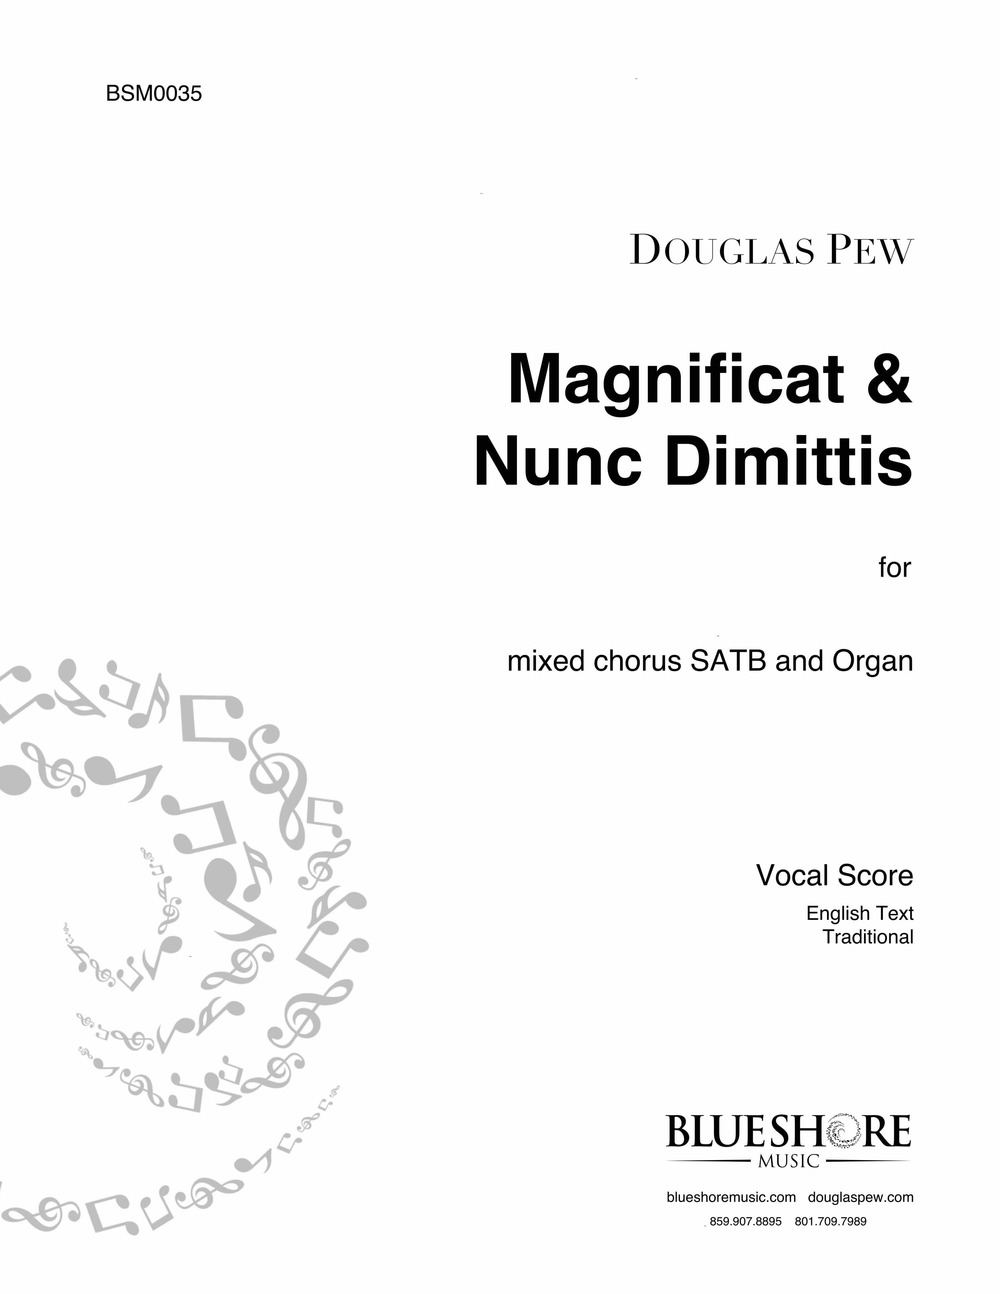 Magnificat & Nunc Dimittis, for SATB and Organ